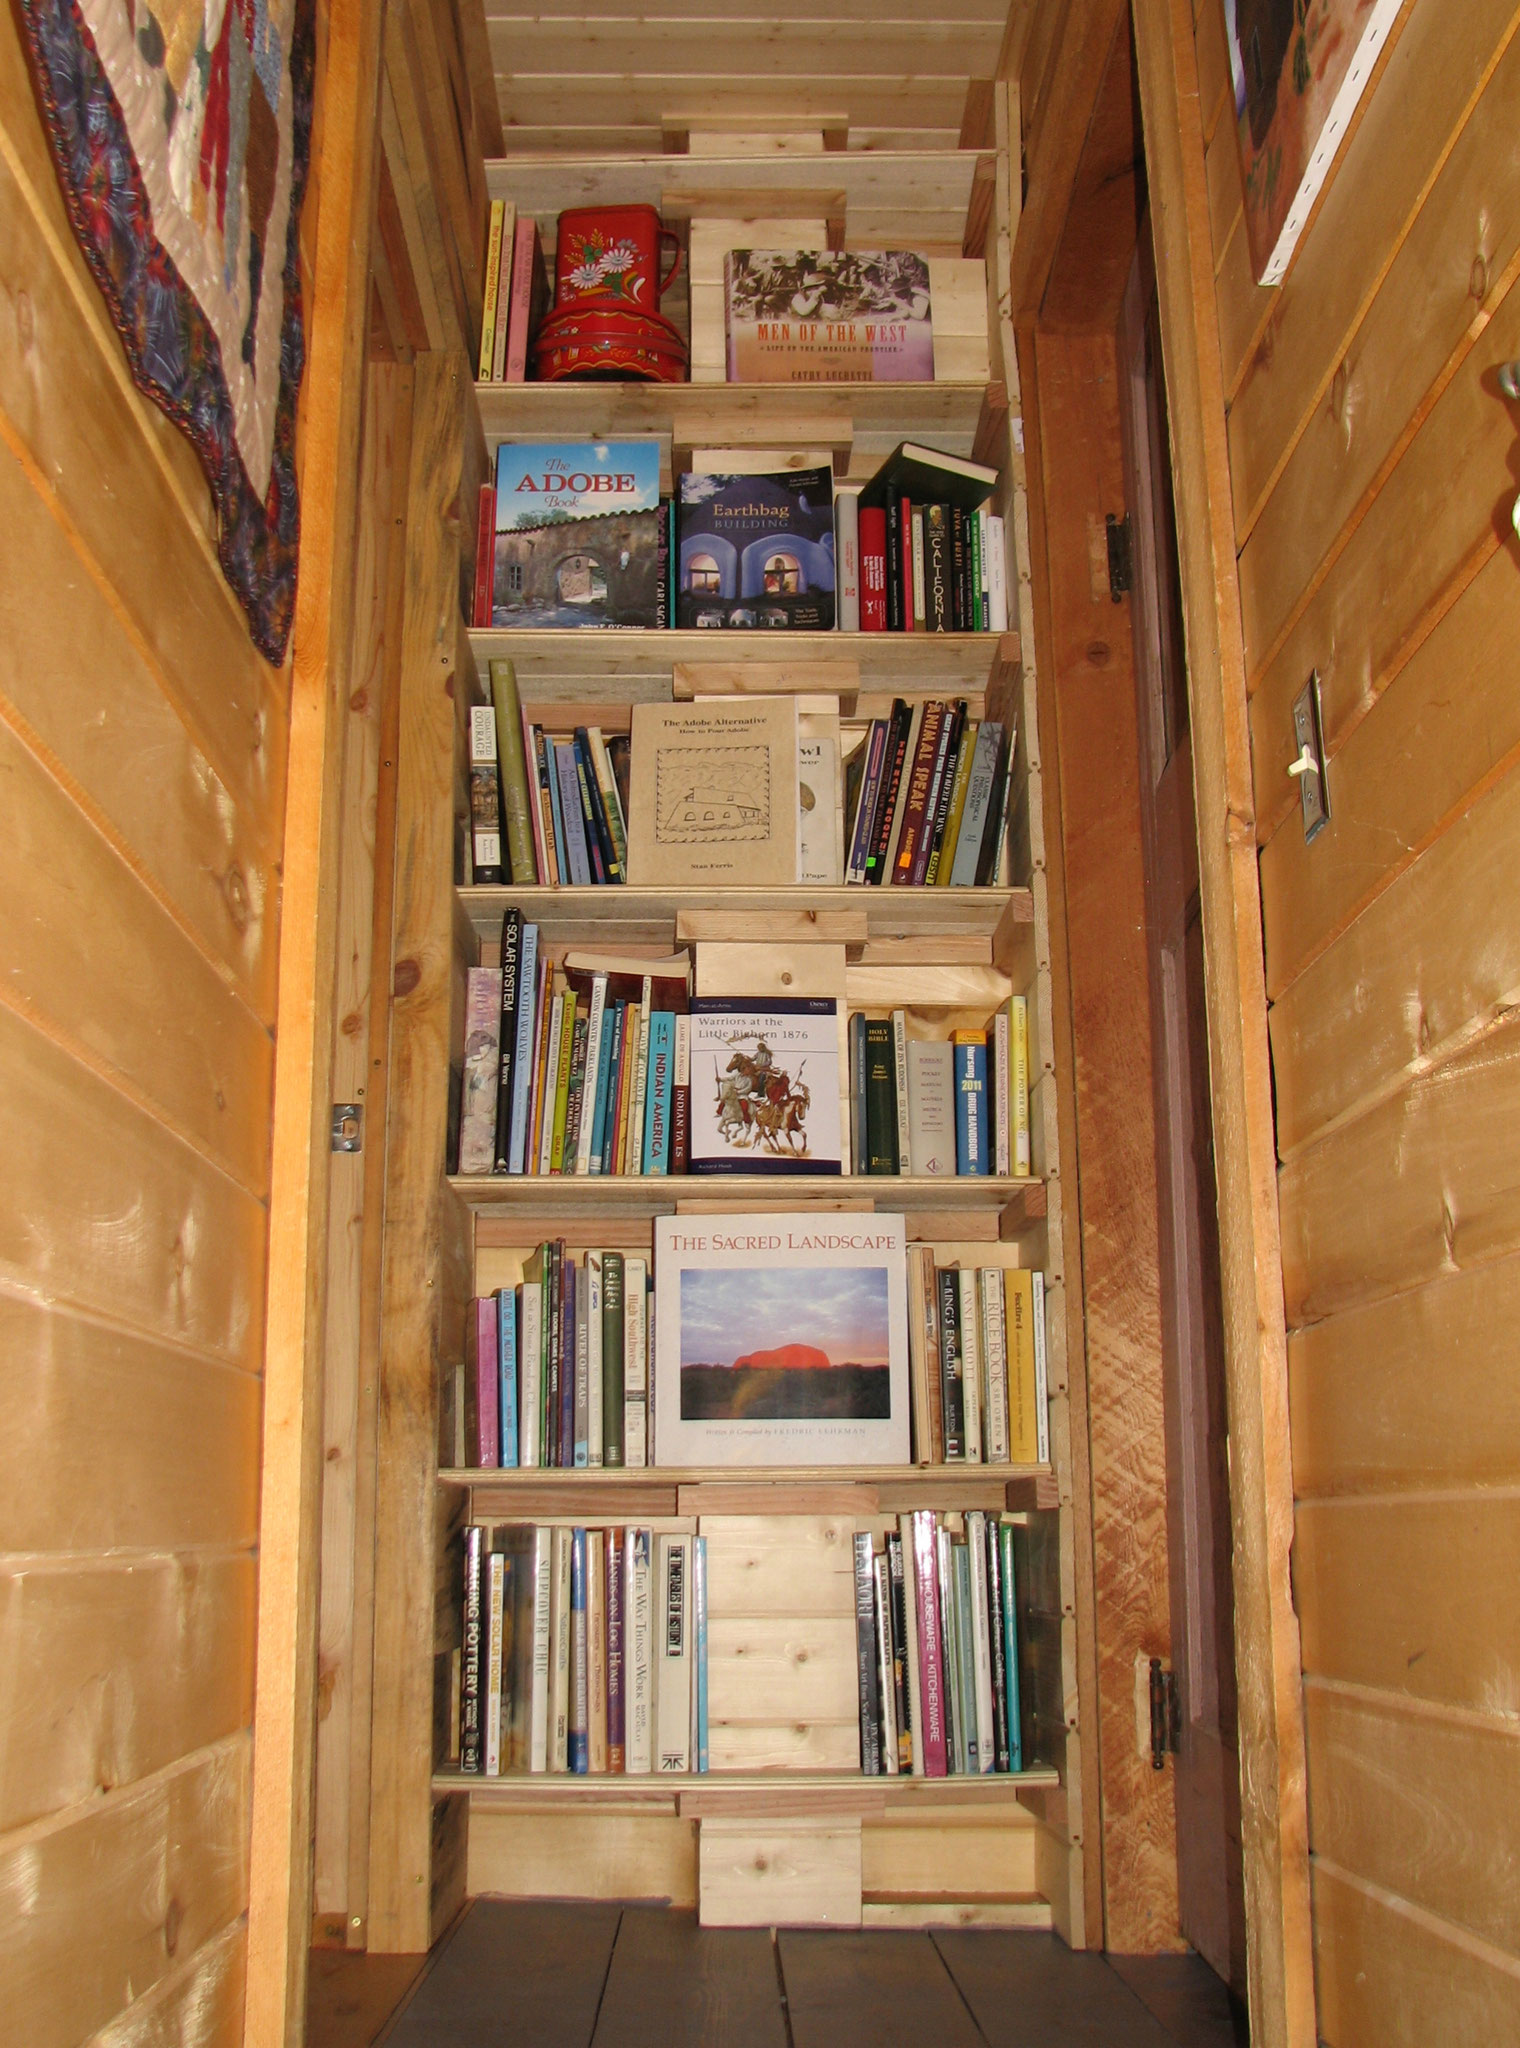 Bookshelves at Top of Second Floor Stairs